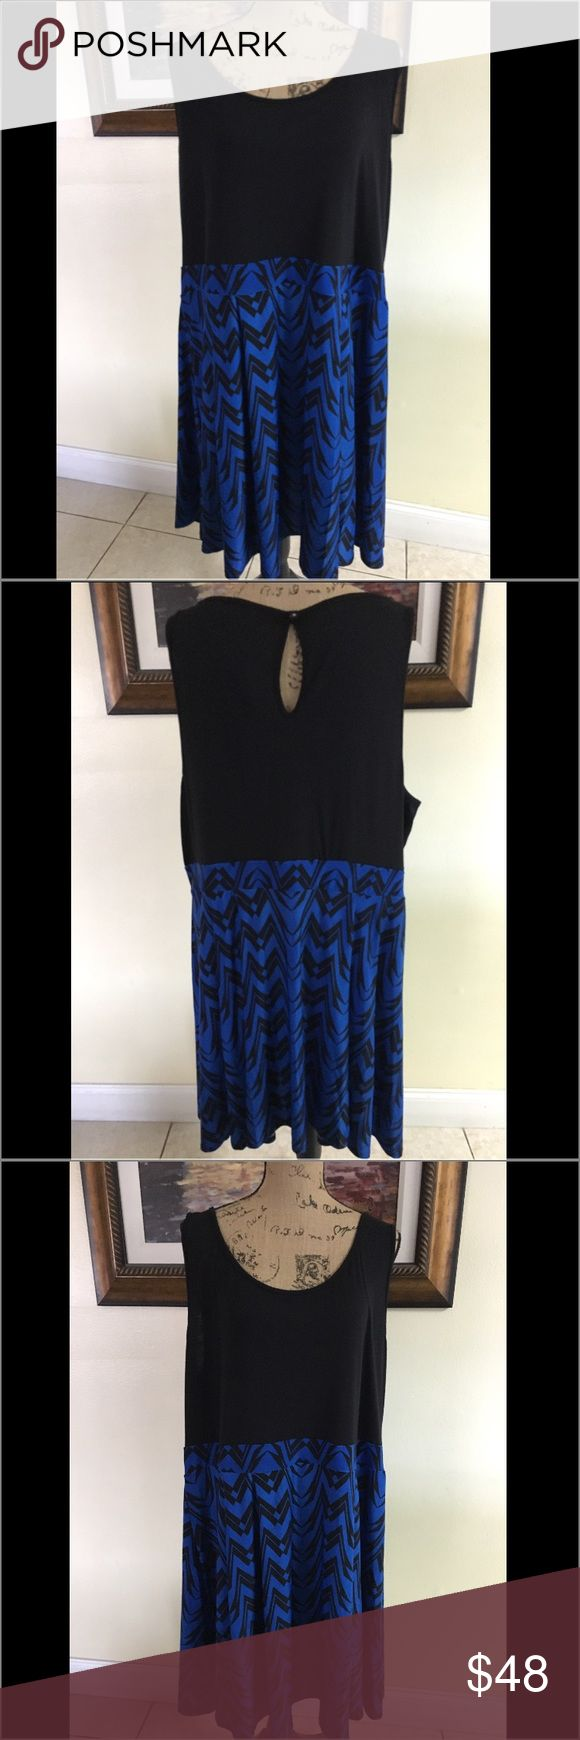 Torrid Blue Chevron Dress Torrid Blue Chevron Dress.  NWT.  Trend-right blue and black chevron stripes pattern this effortless knit tank dress. Cool, flirty and casual - we recommend wearing it everywhere this summer.  Could be worn during the day or night!  Sold out!   Features & details Polyester/spandex Wash cold; dry low Imported torrid Dresses